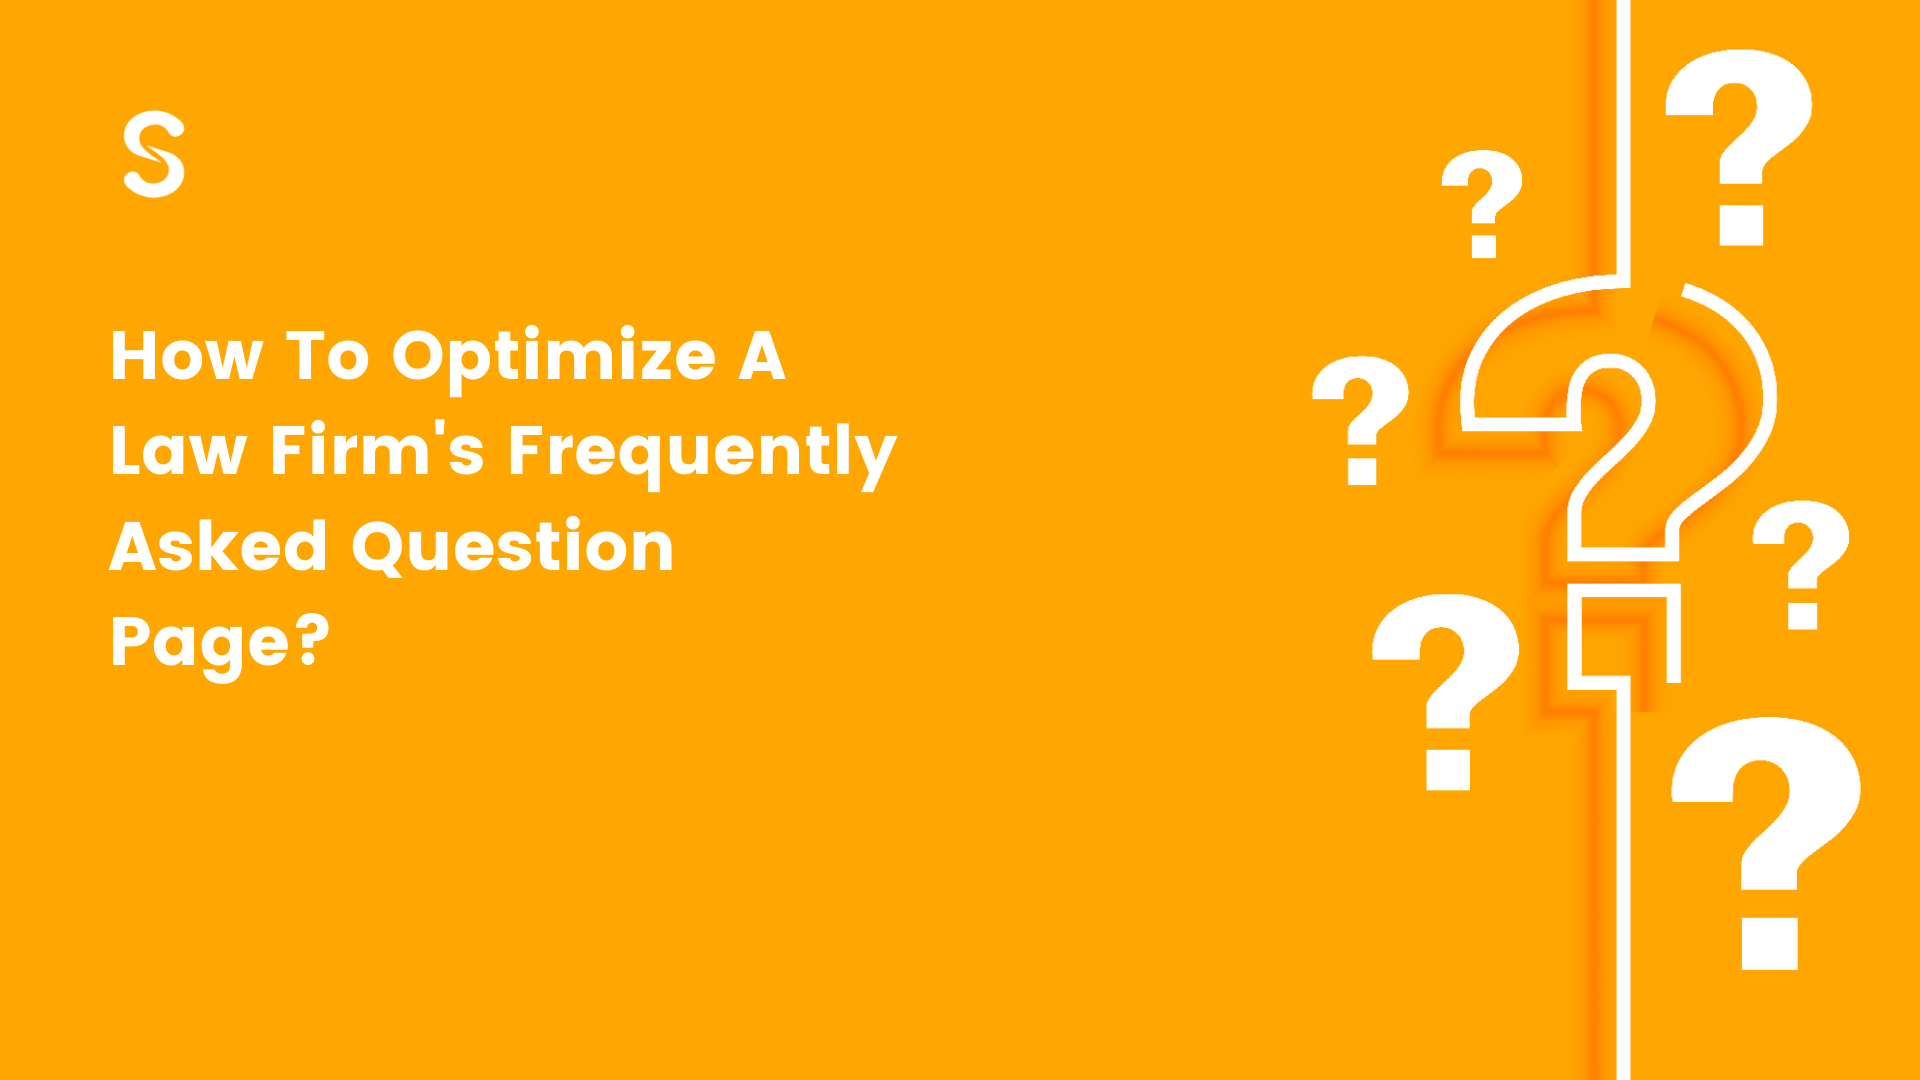 How To Optimize A Law Firm's Frequently Asked Question Page?